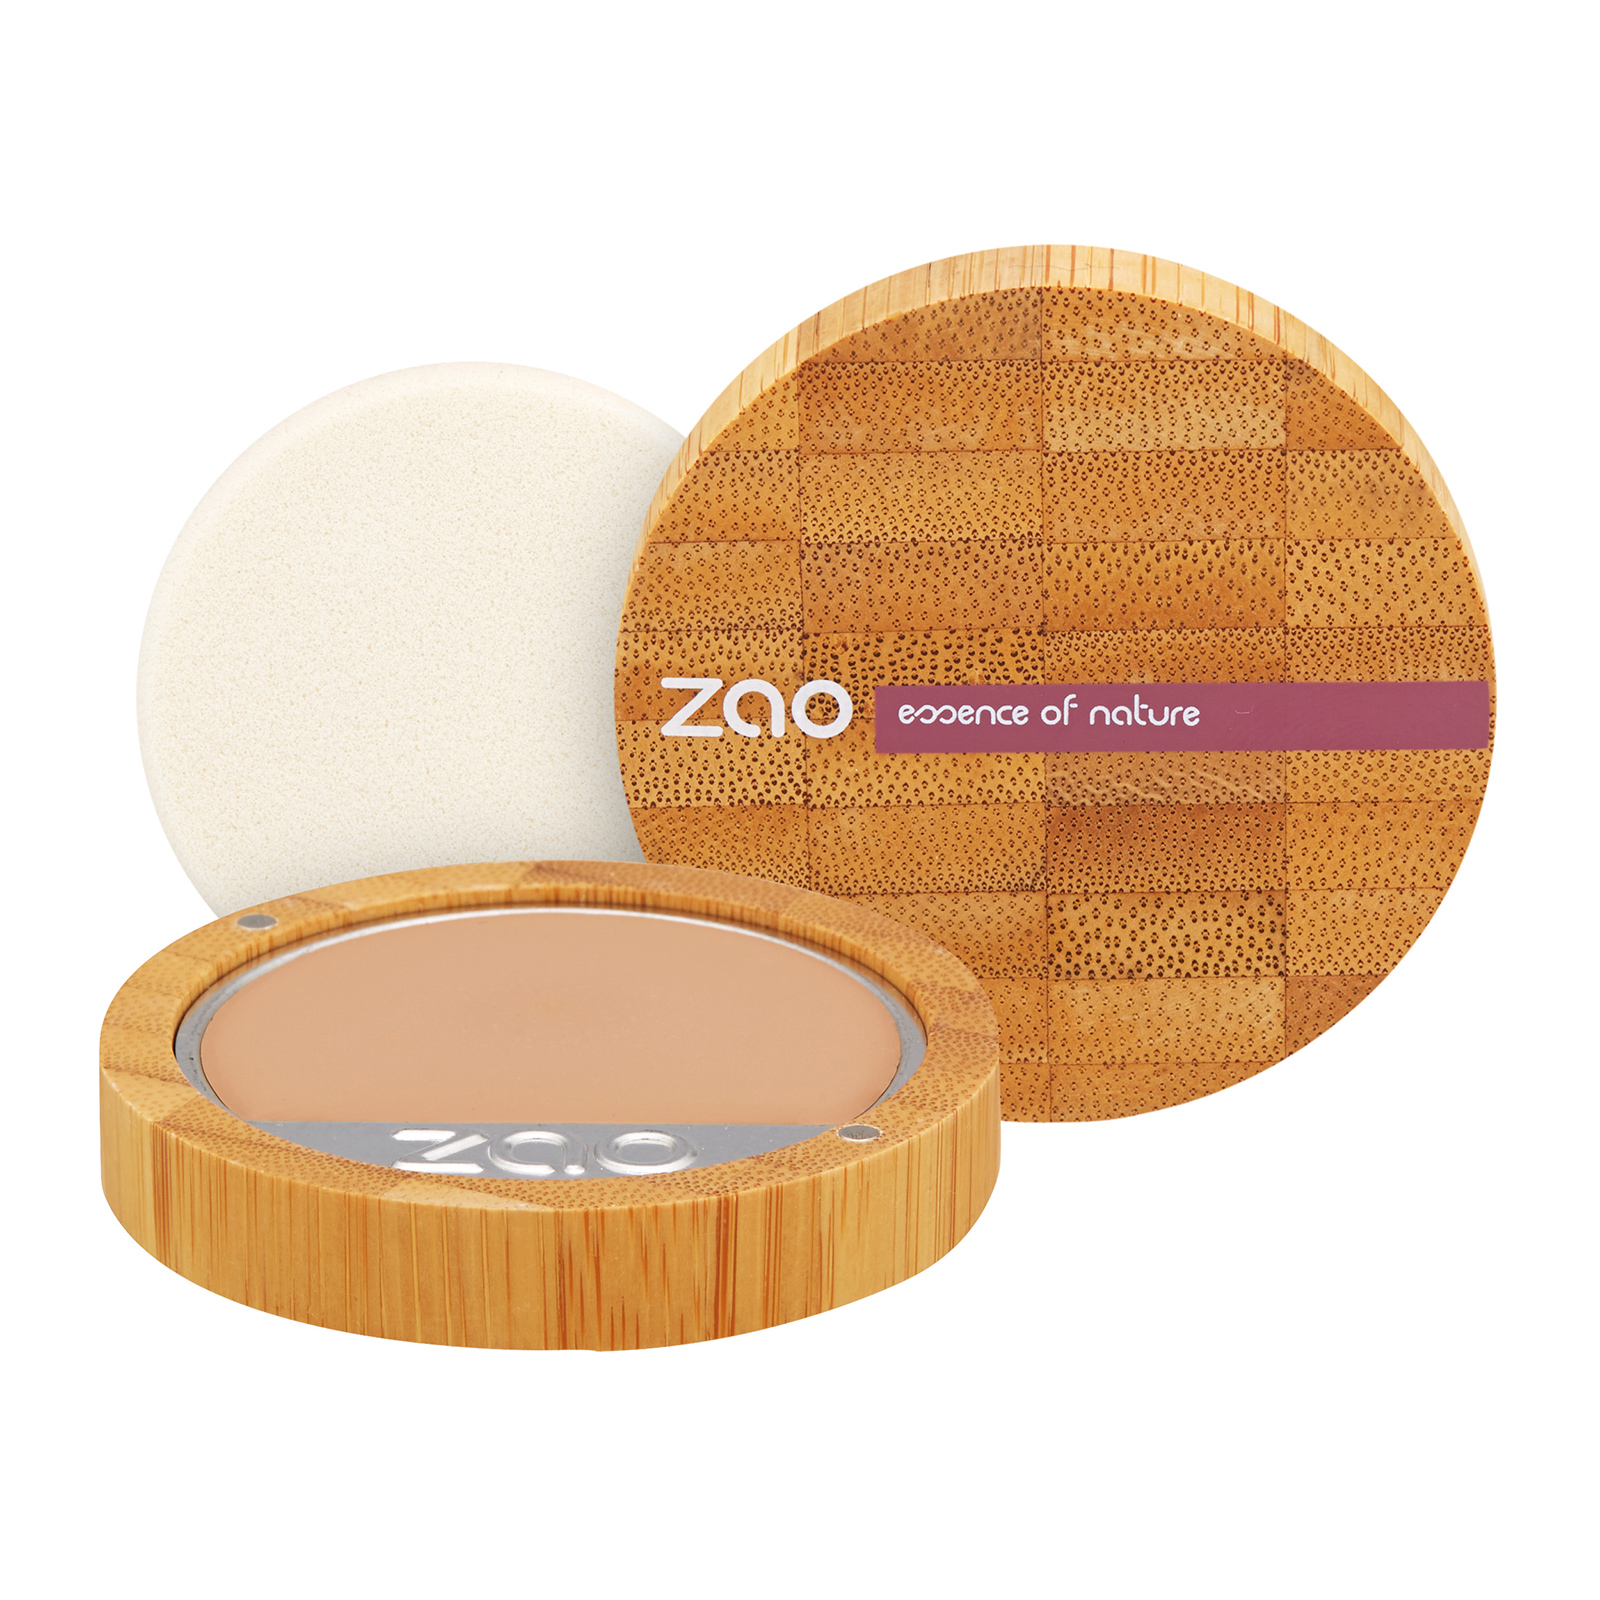 ZAO  Compact foundation 733 Neutral, 0.212oz, 6g from Cosme-De.com